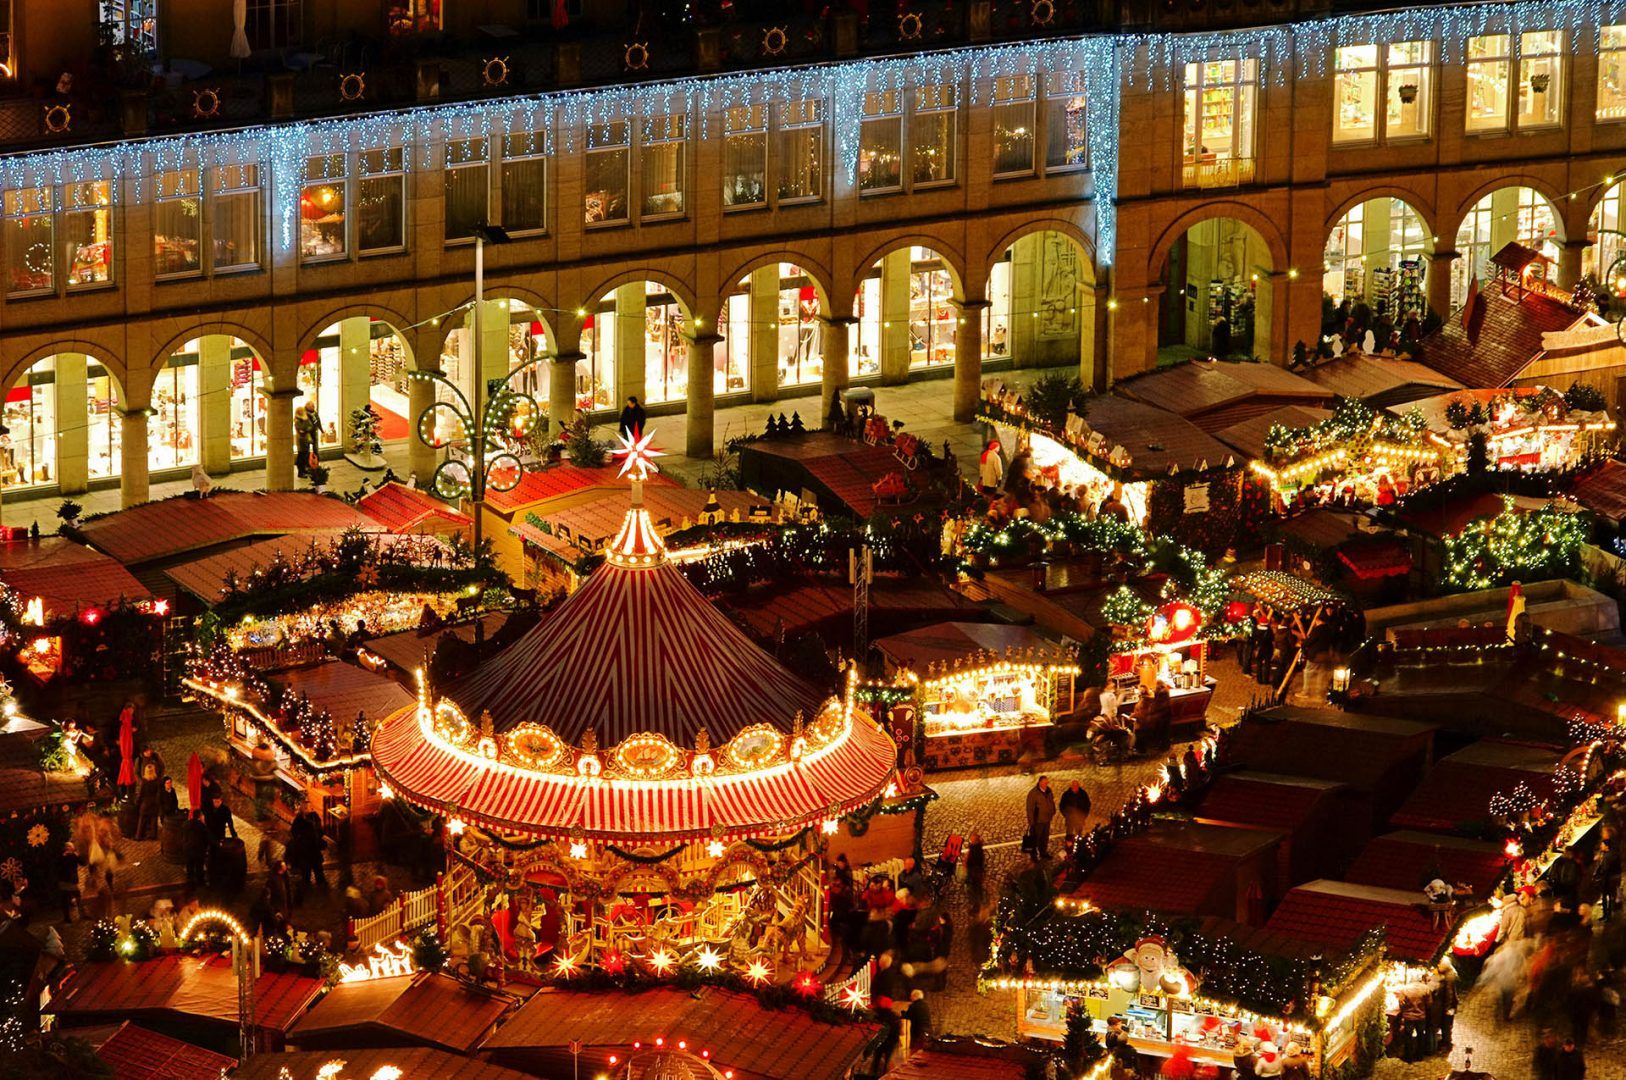 Nclusive Christmas Market Tours From Usa 2021 20 Of The Most Picturesque Christmas Destinations Rough Guides